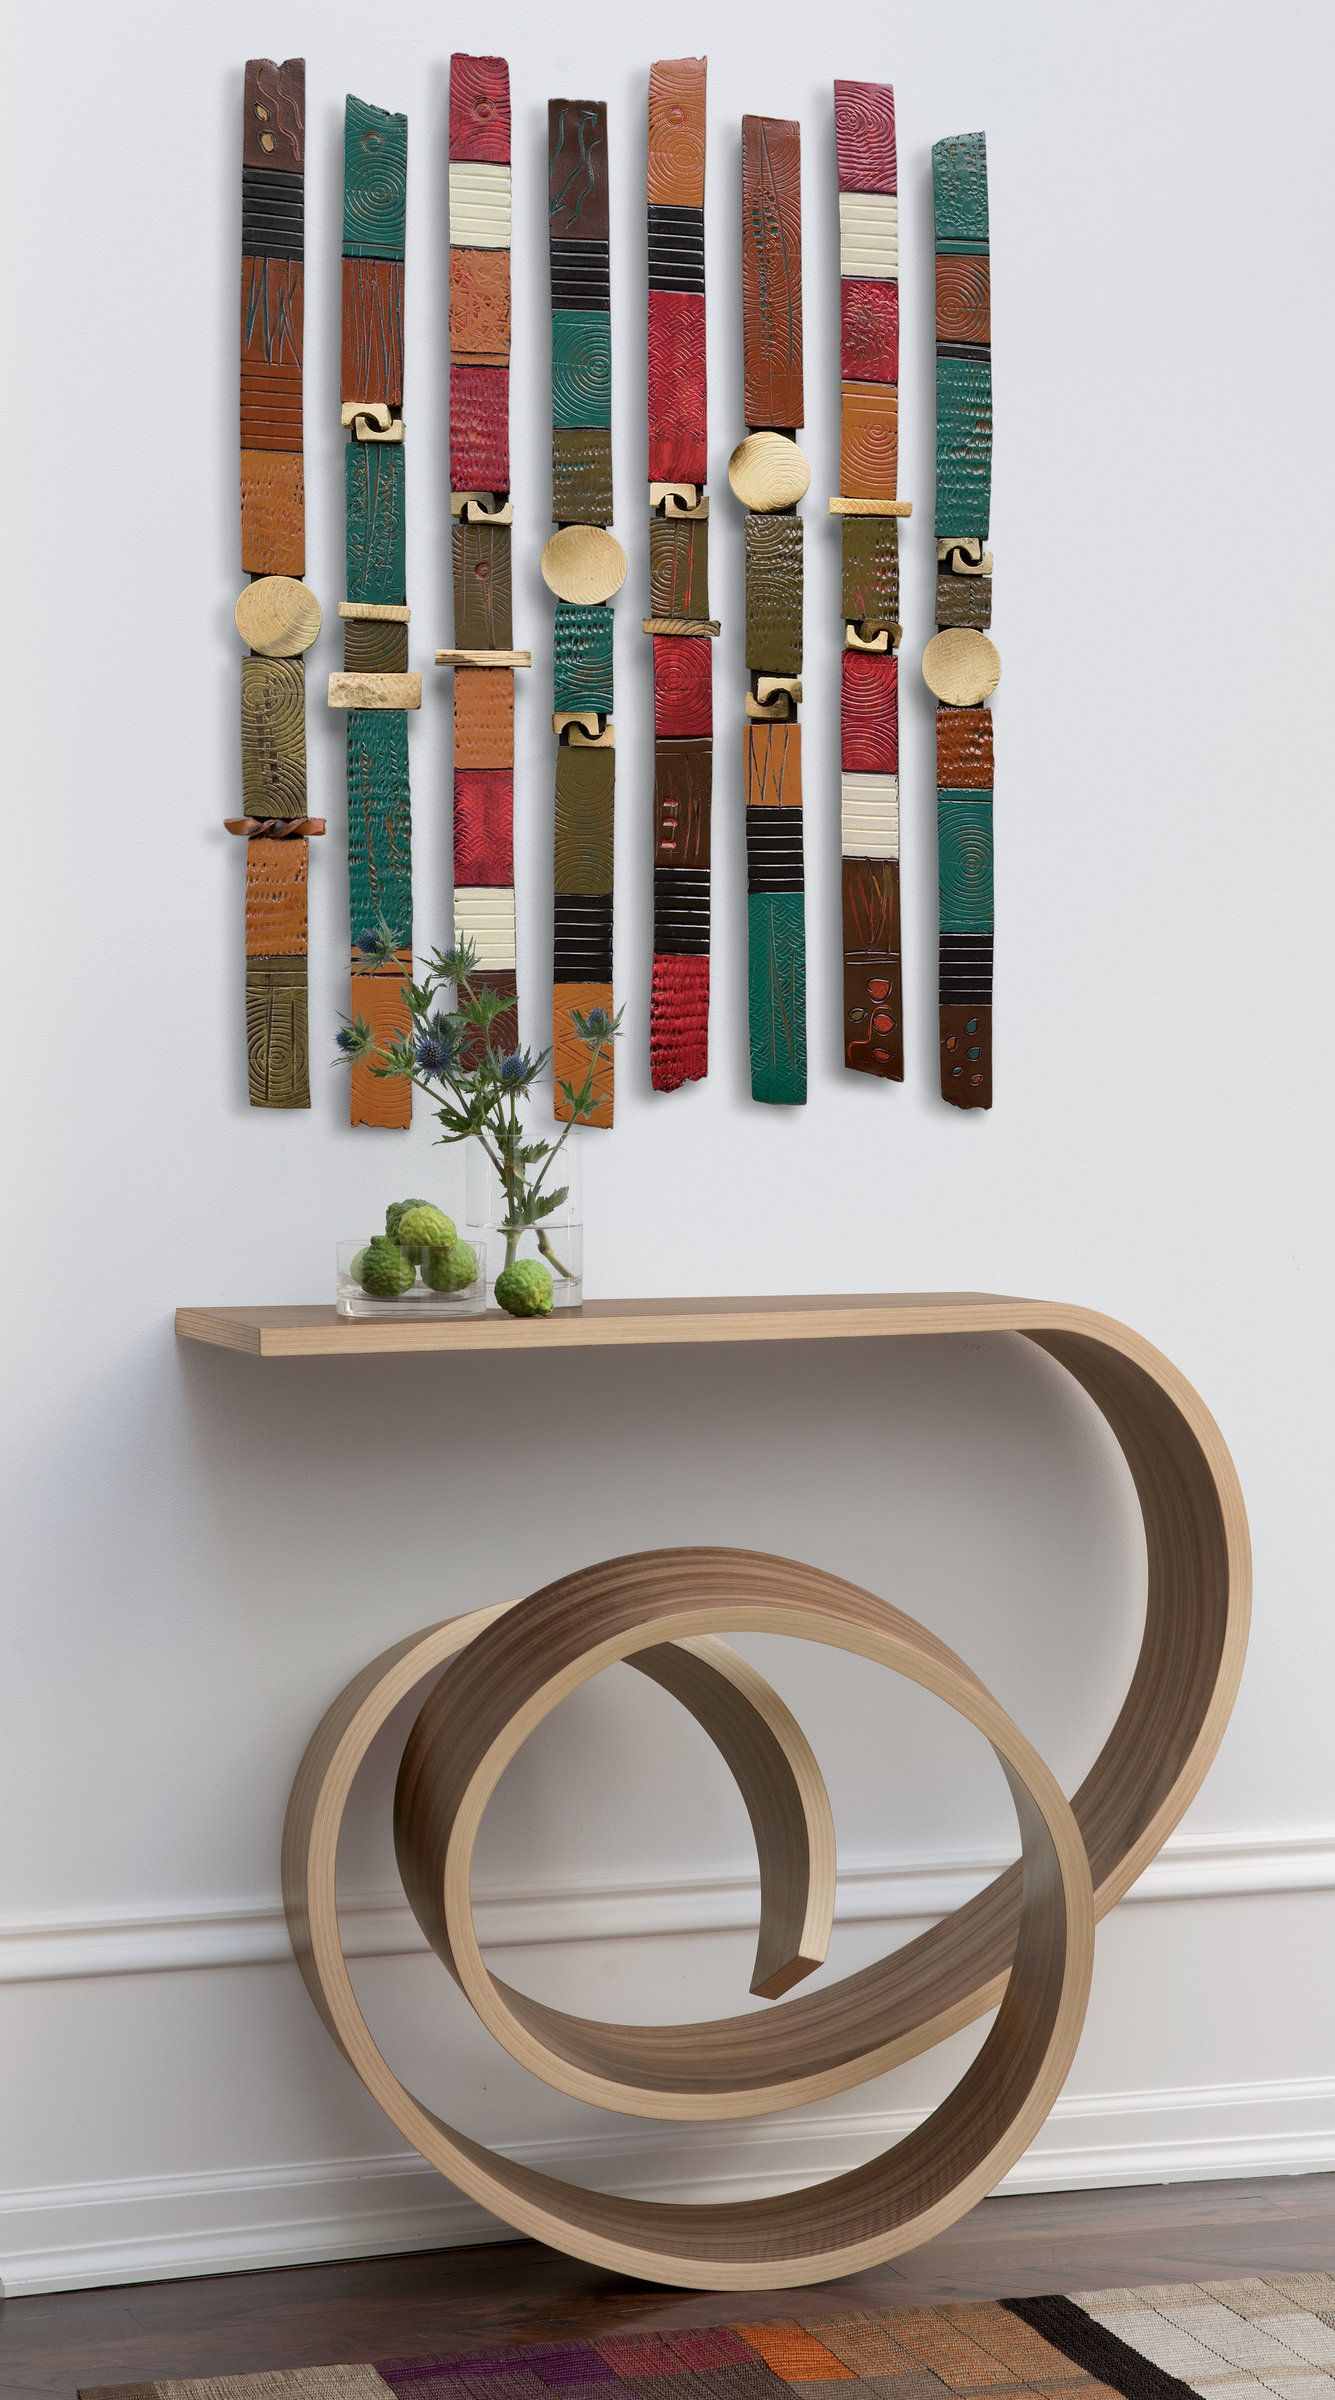 Story sticks by rhonda cearlock ceramic wall art available at